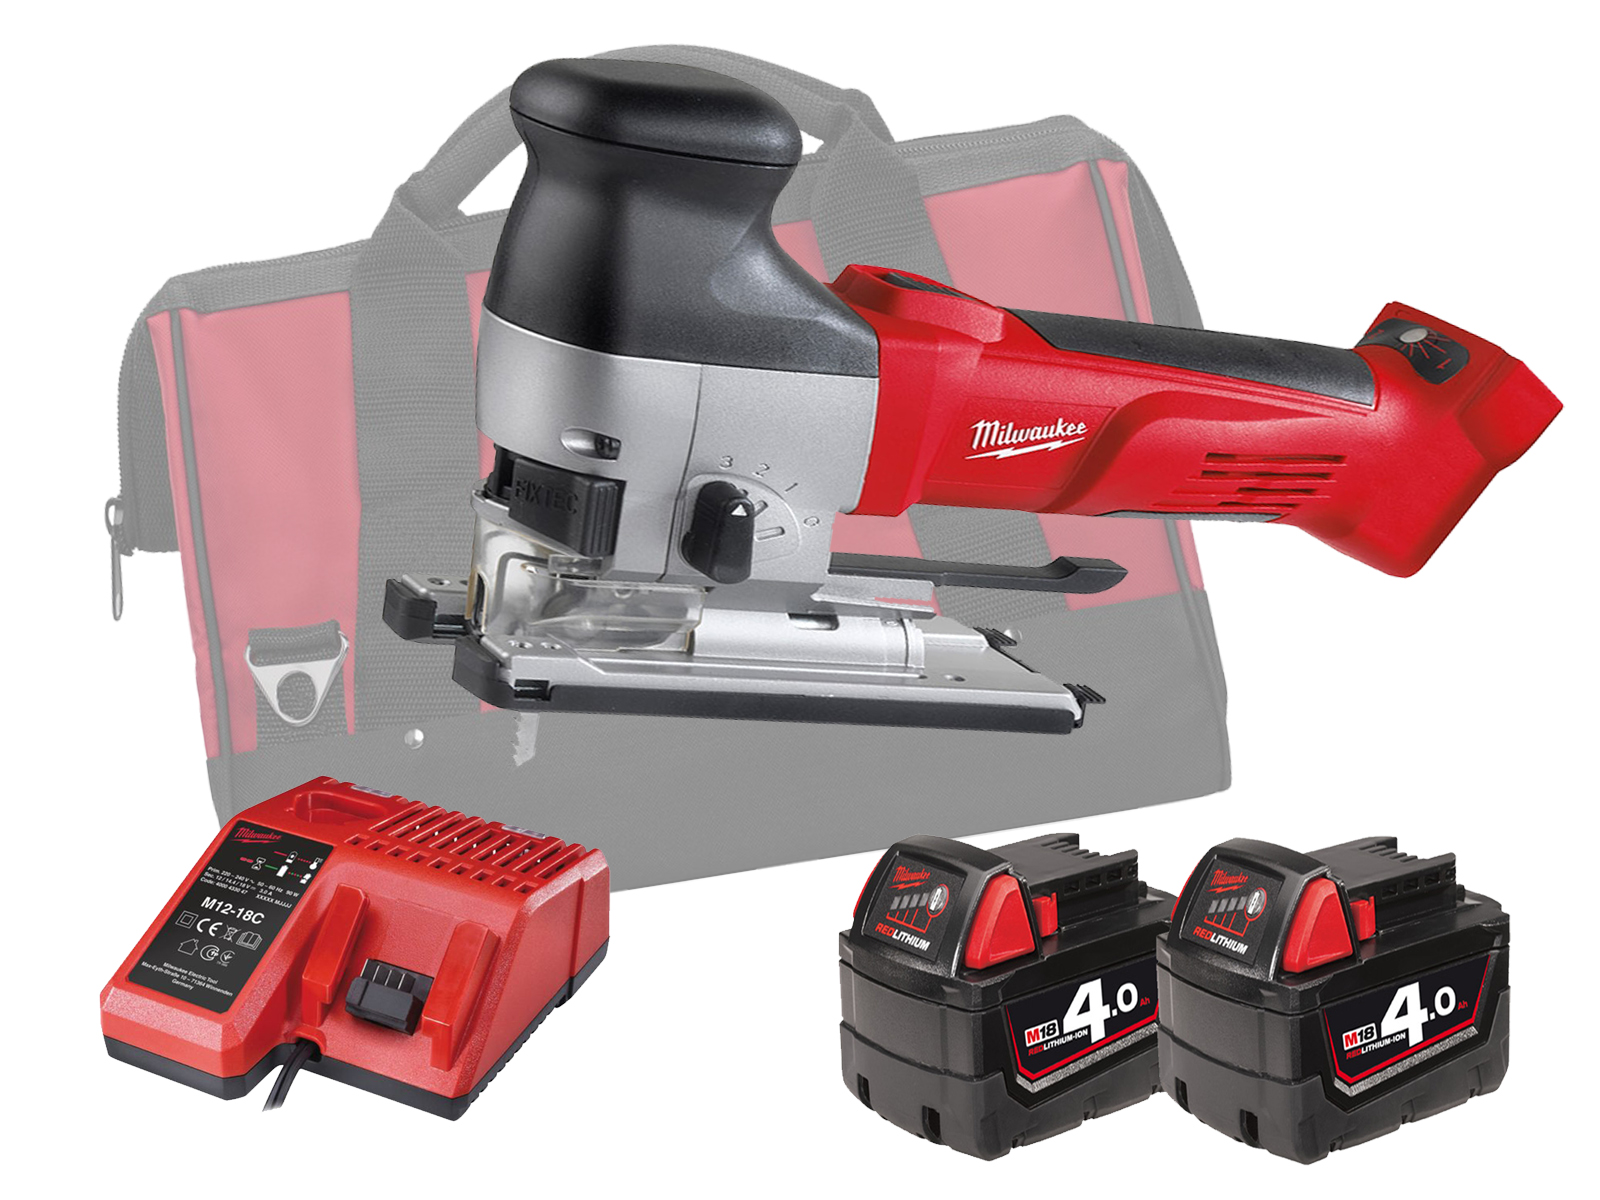 MILWAUKEE 18V HEAVY-DUTY BODY GRIP JIGSAW - HD18JSB - 4.0AH PACK